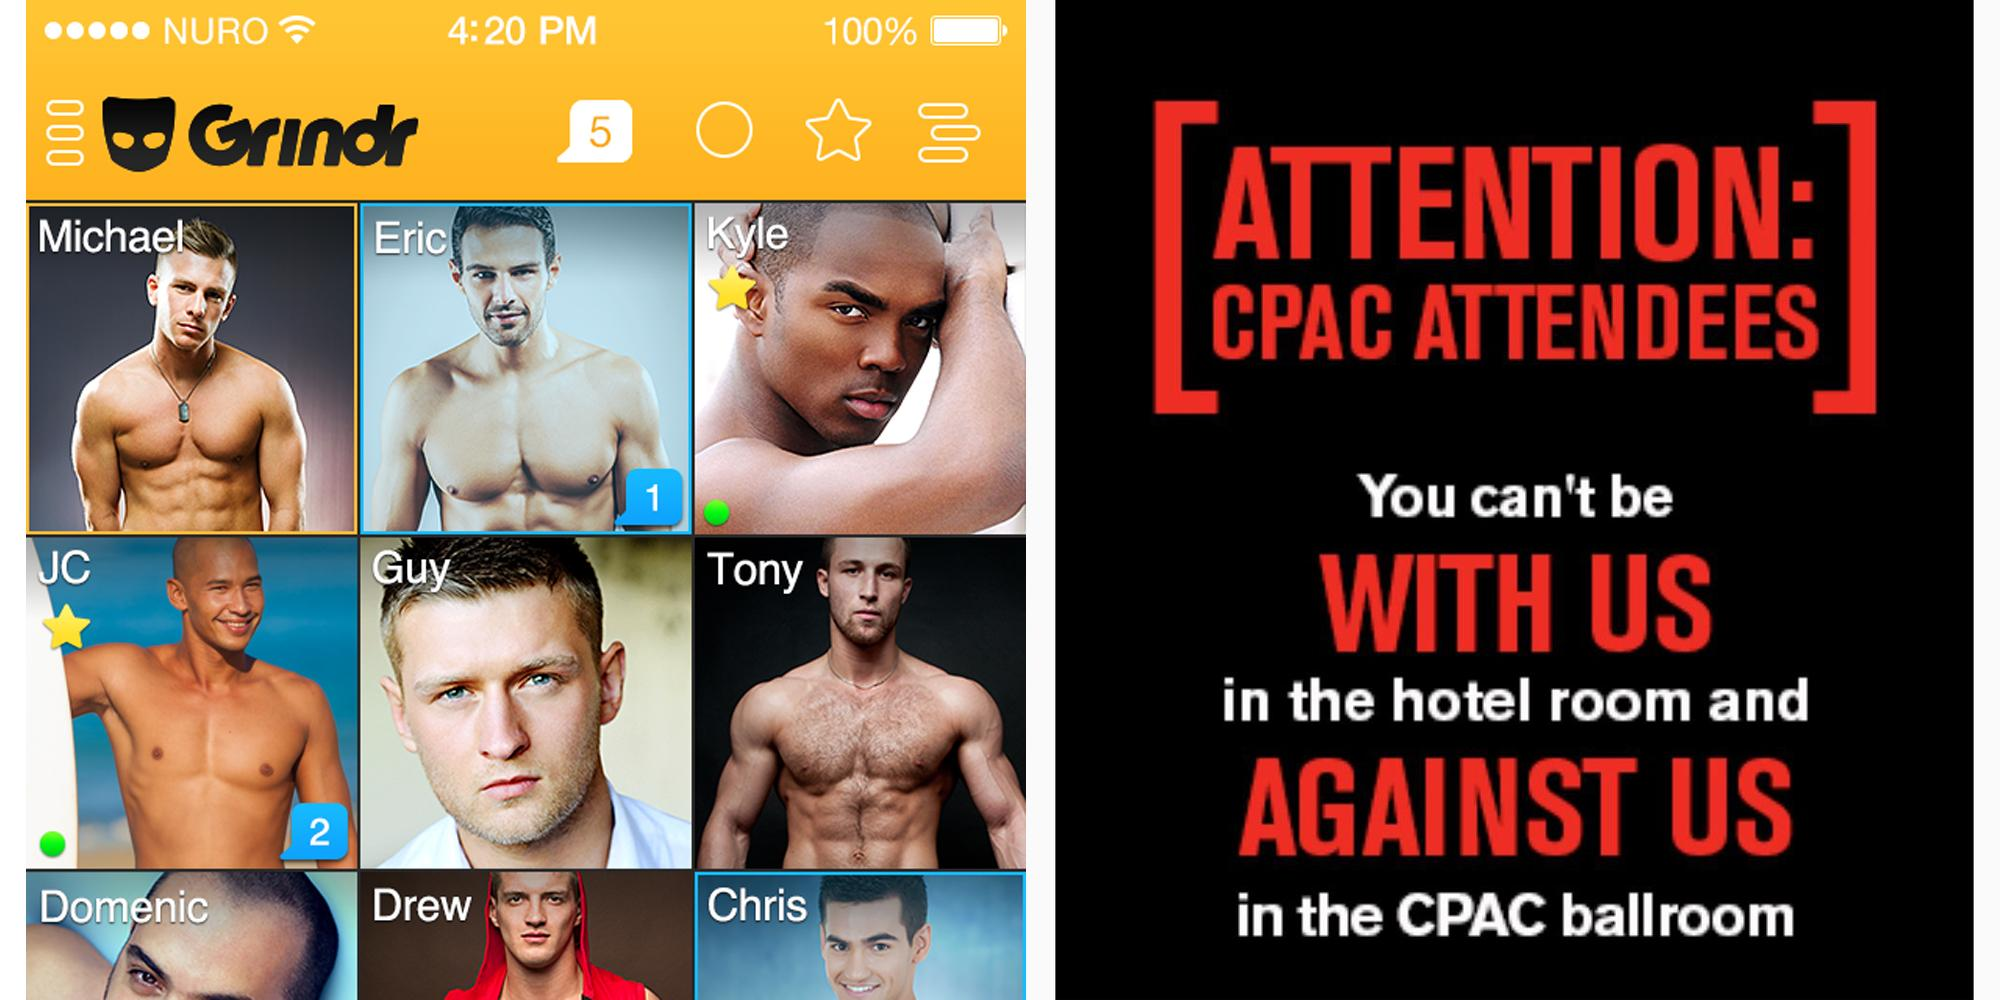 The Human Rights Campaign trolled Republicans at CPAC with an ad on …